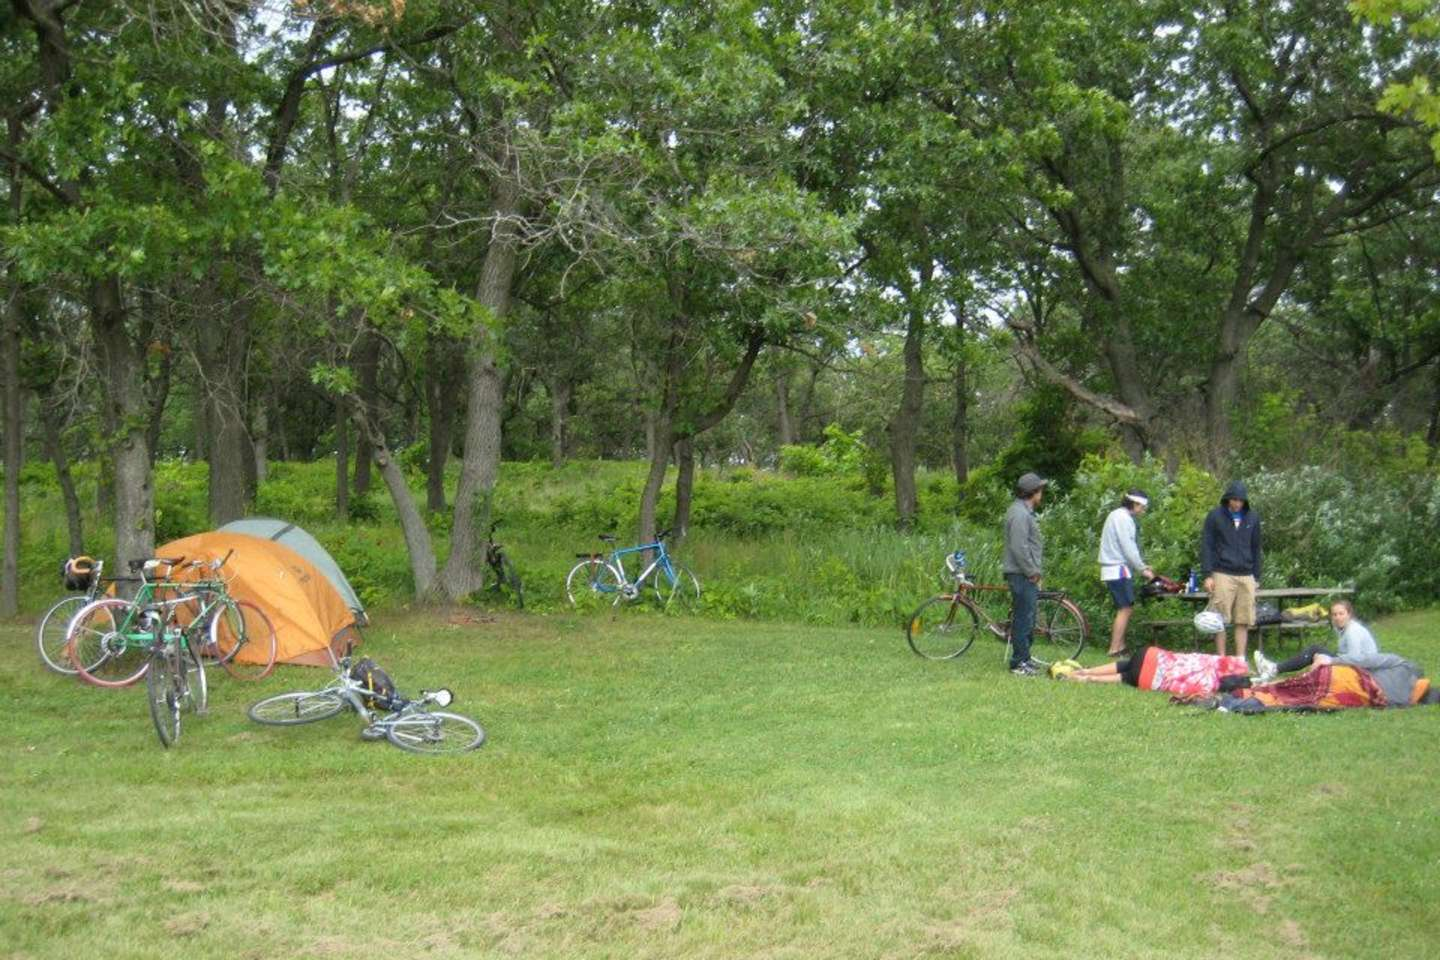 Illinois Beach Campground Il 4 Hipcamper Reviews And 9 Photos